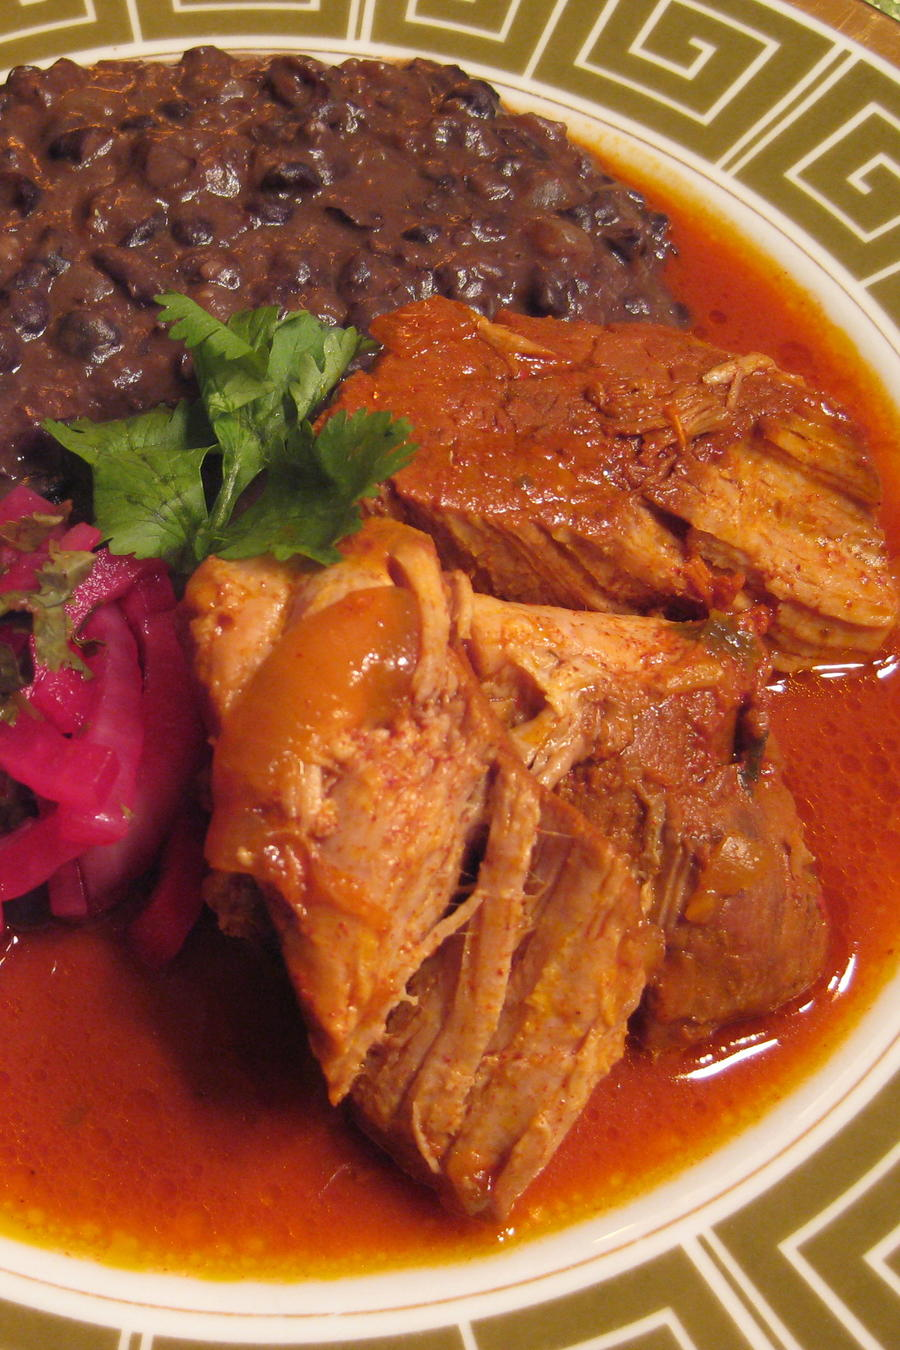 Pork shoulder marinated with achiote and braised in achiote paste and bitter orange juice